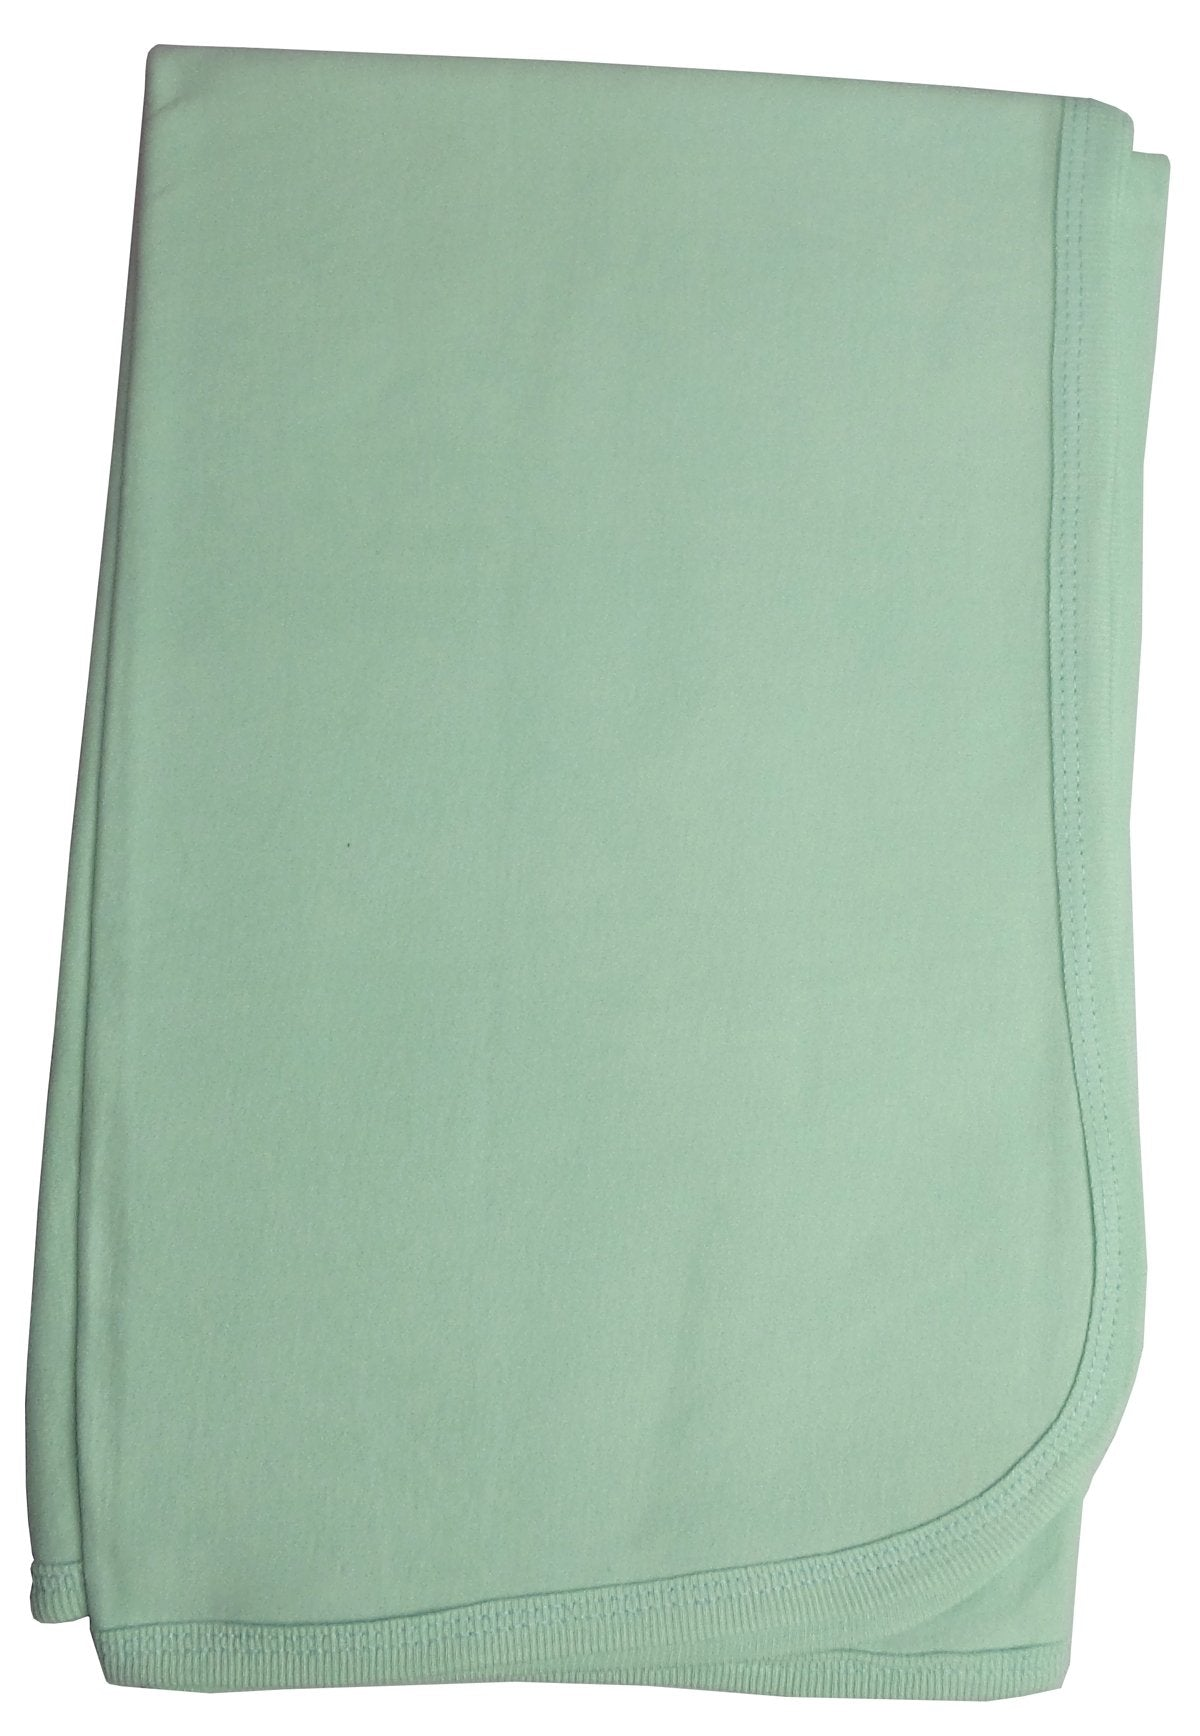 Bambini Mint Receiving Blanket - Baby World Inc